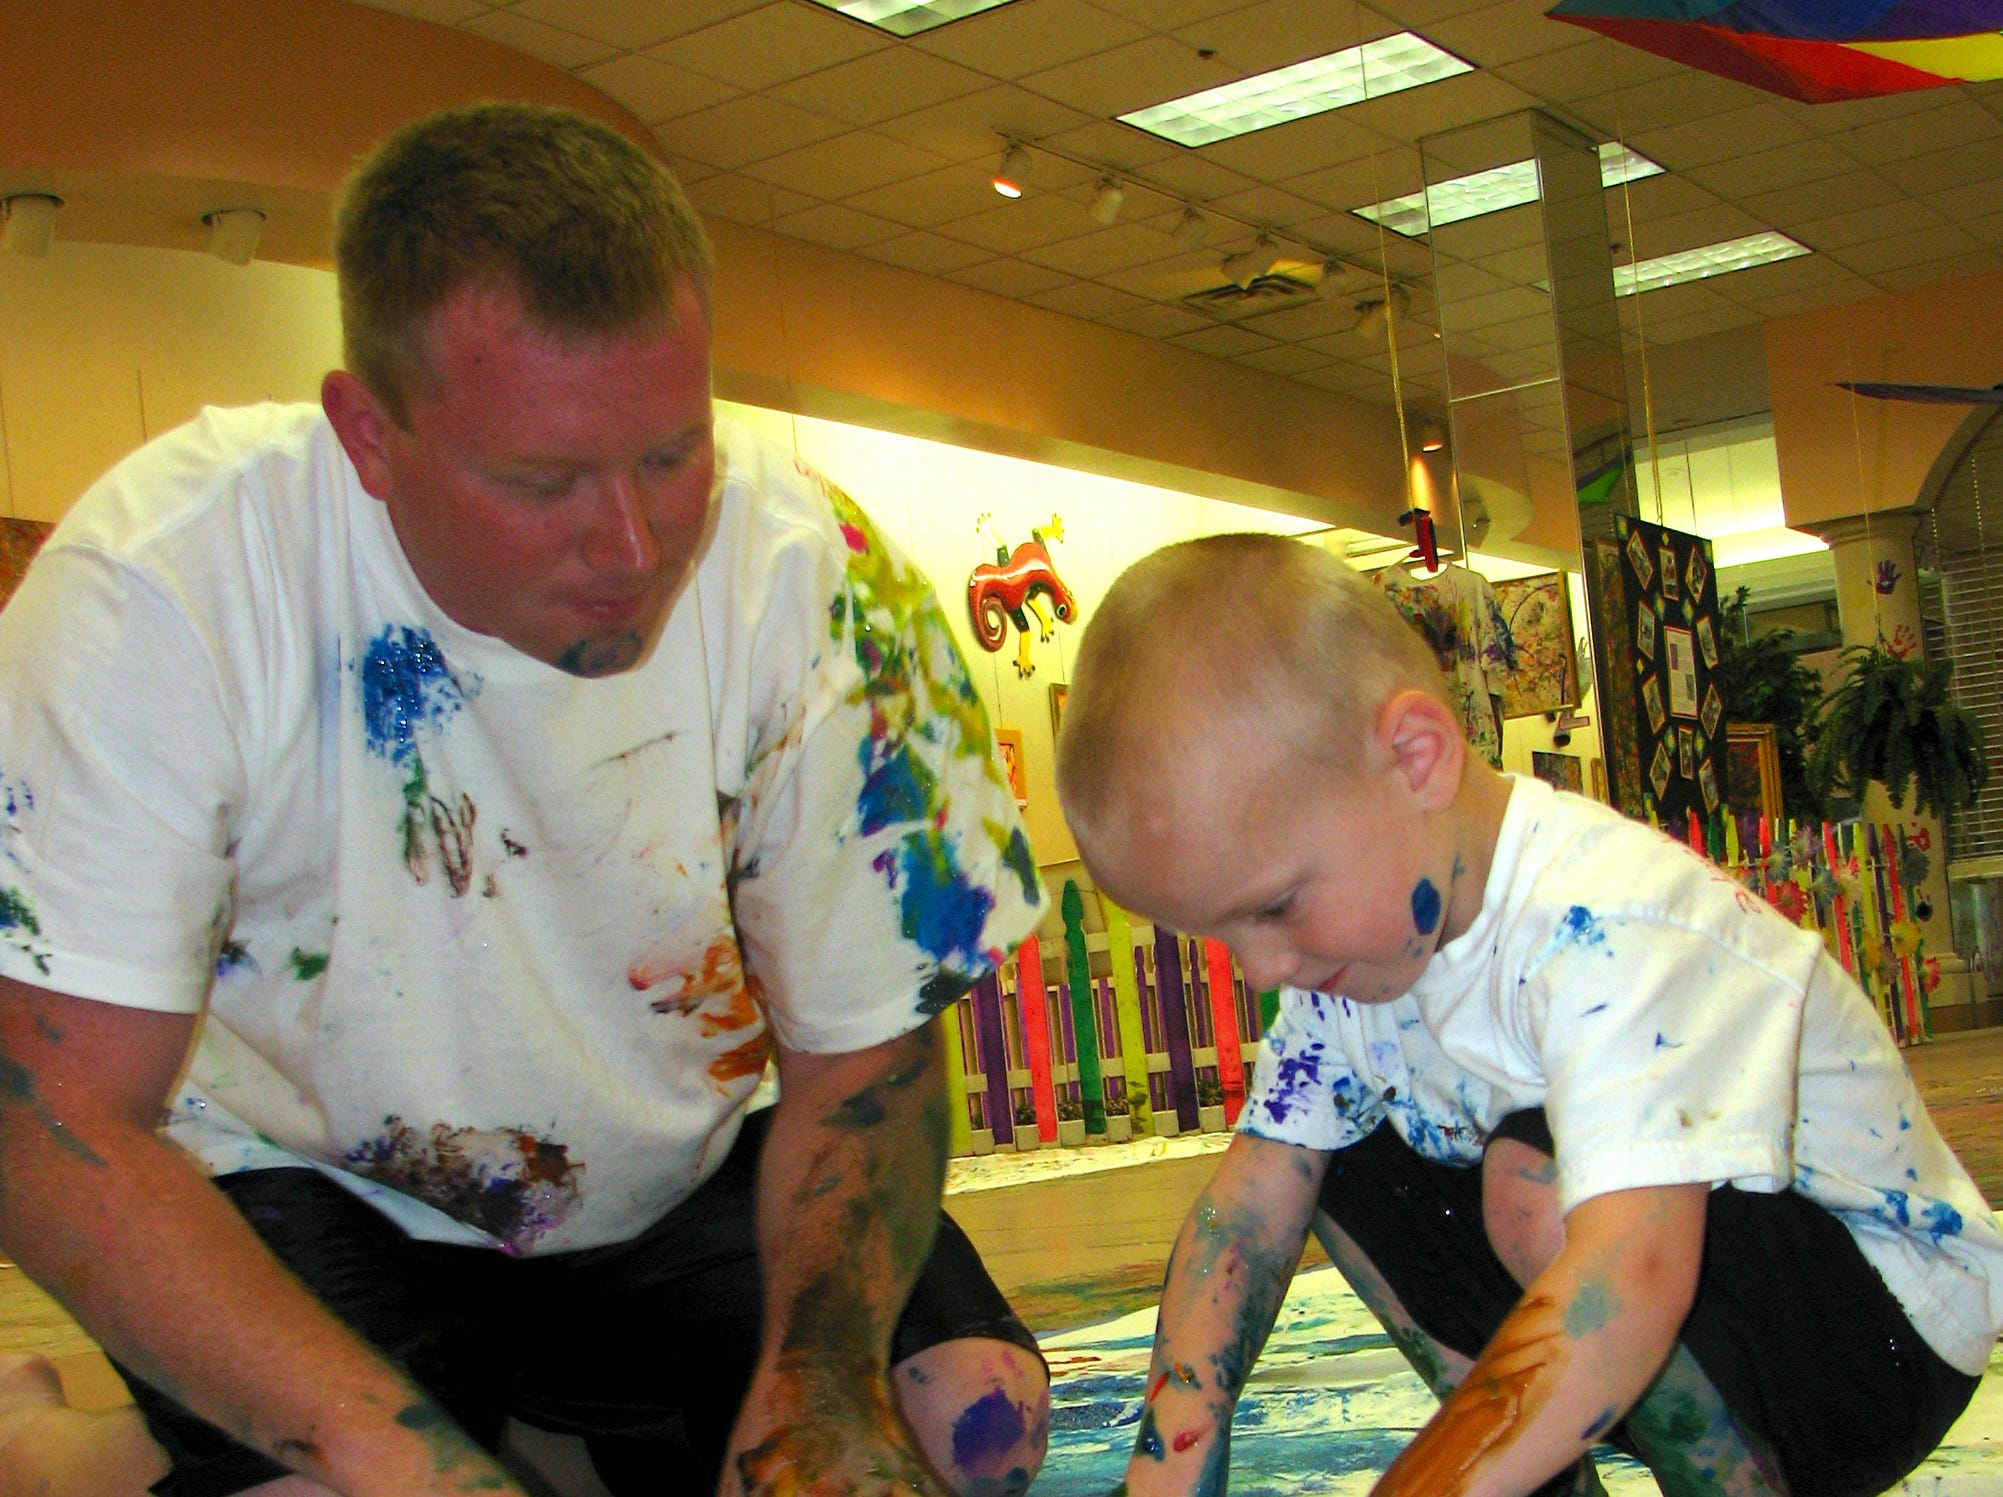 Kevin McLean of Lisle paints with his son Ryan, 3, as The Magic Paintbrush Project served its 2000th particpant in June of 2007. According to Project organizer Jennifer O'Brien, a few statistics... Over 700 gallons of paint 4,000 square feet of donated workshop space from the Oakdale Mall. Over 4,500 hours of volunteer time.